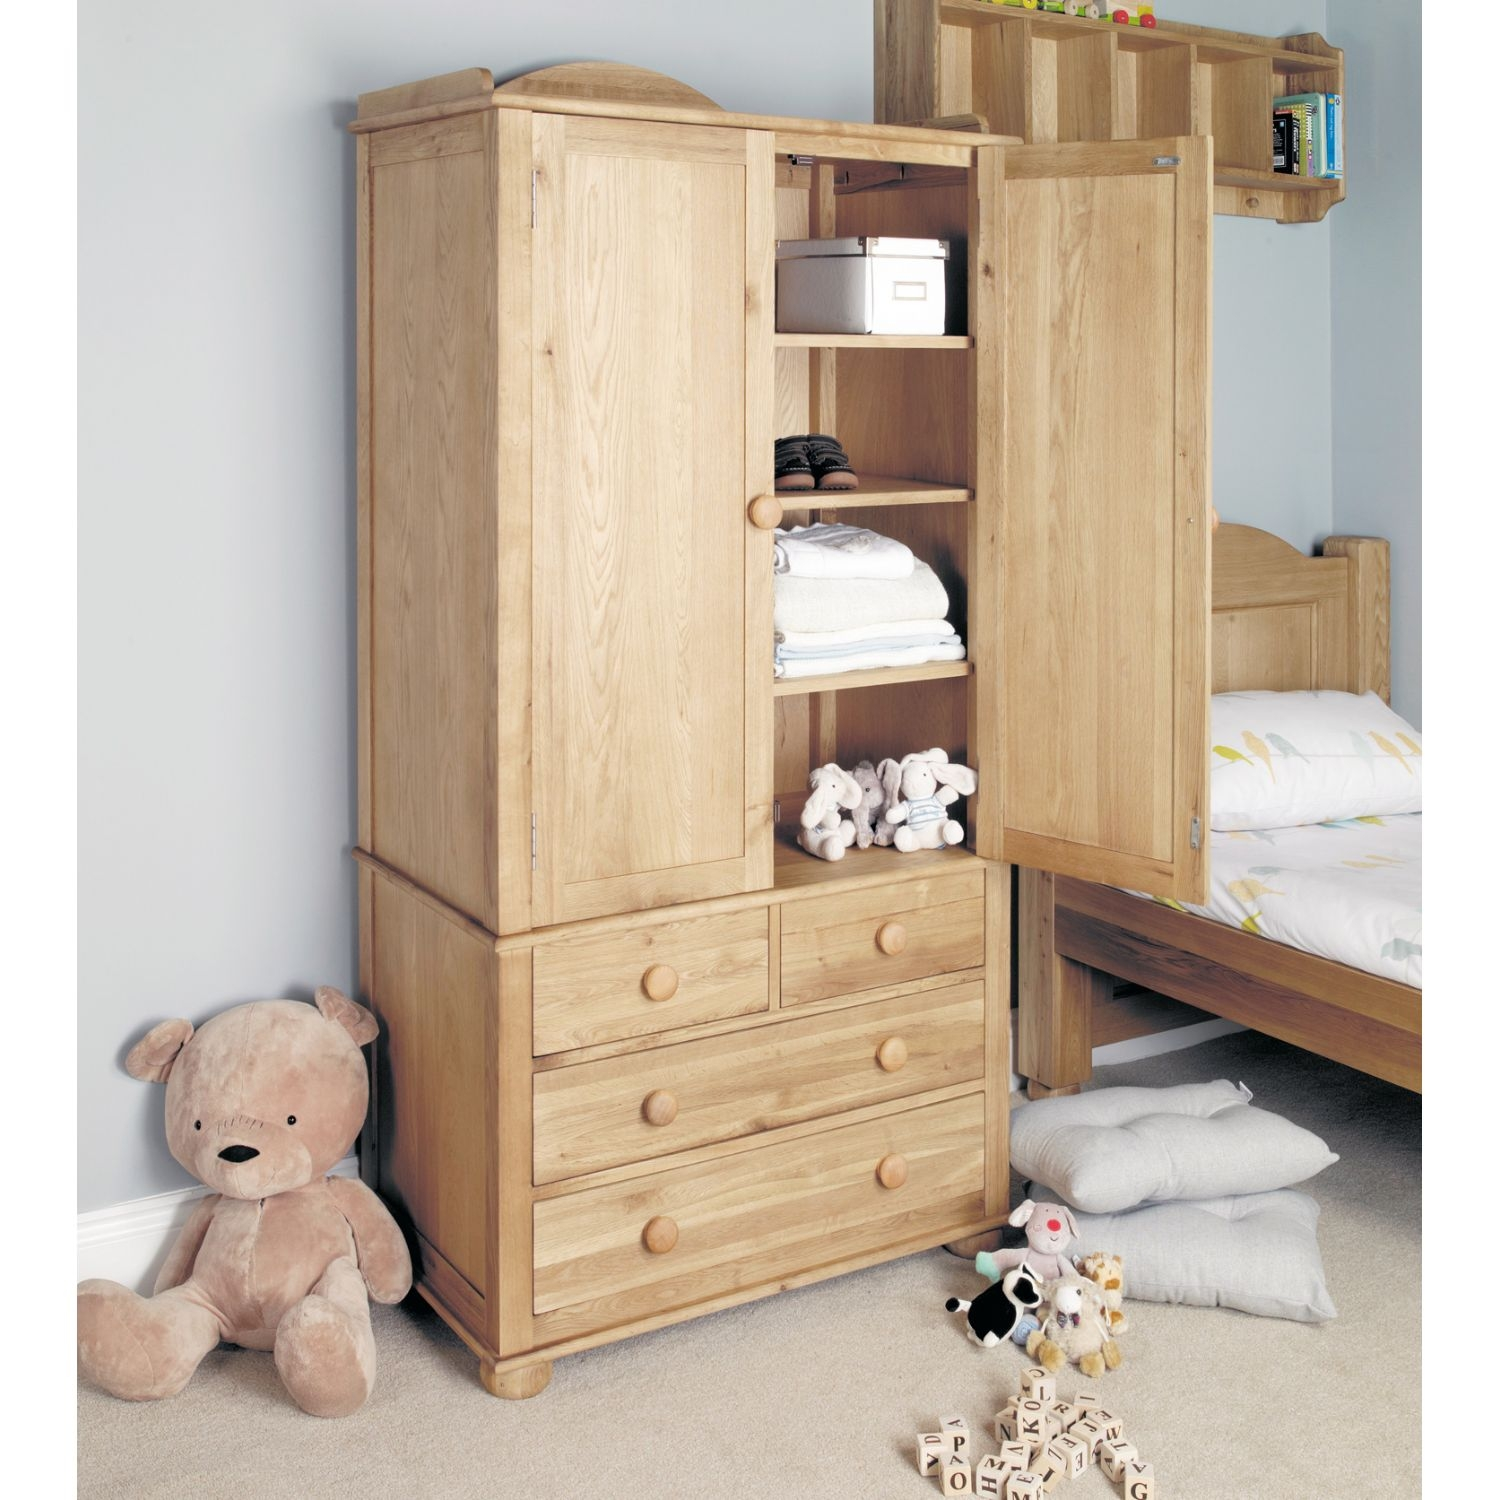 Childrens Wardrobes With Shelves Awesome Interior Pertaining To Wardrobes With Shelves And Drawers (View 3 of 15)